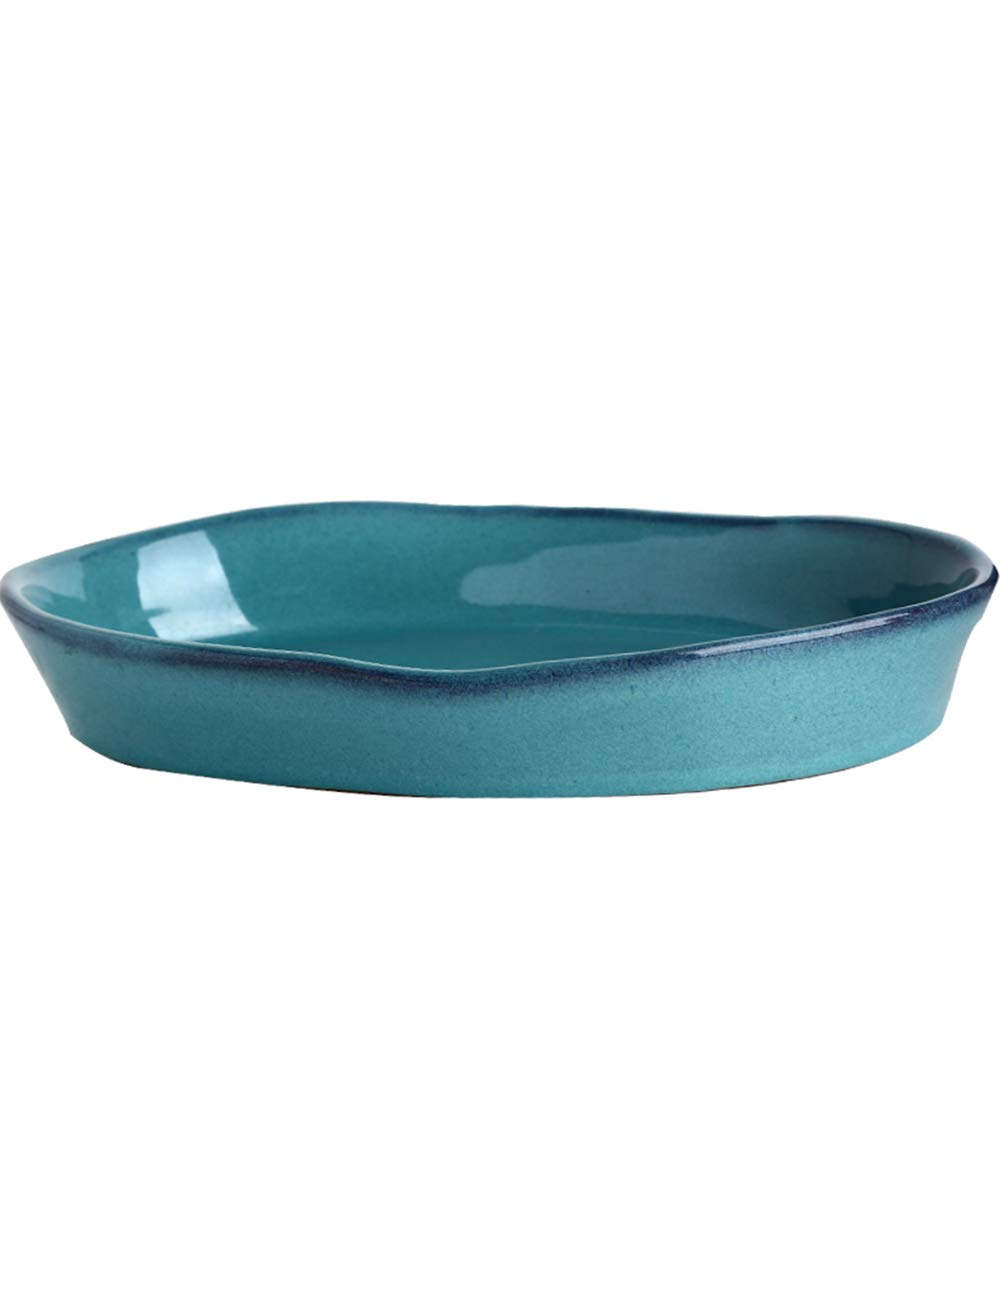 ZYear American Blue and Green Oval Plate Ceramic, Antalya Household Dish Large Fish Plate Salad Plate,Irregular Ellipse, Multi-Purpose, High Temperature Resistant Oven ZYear Y